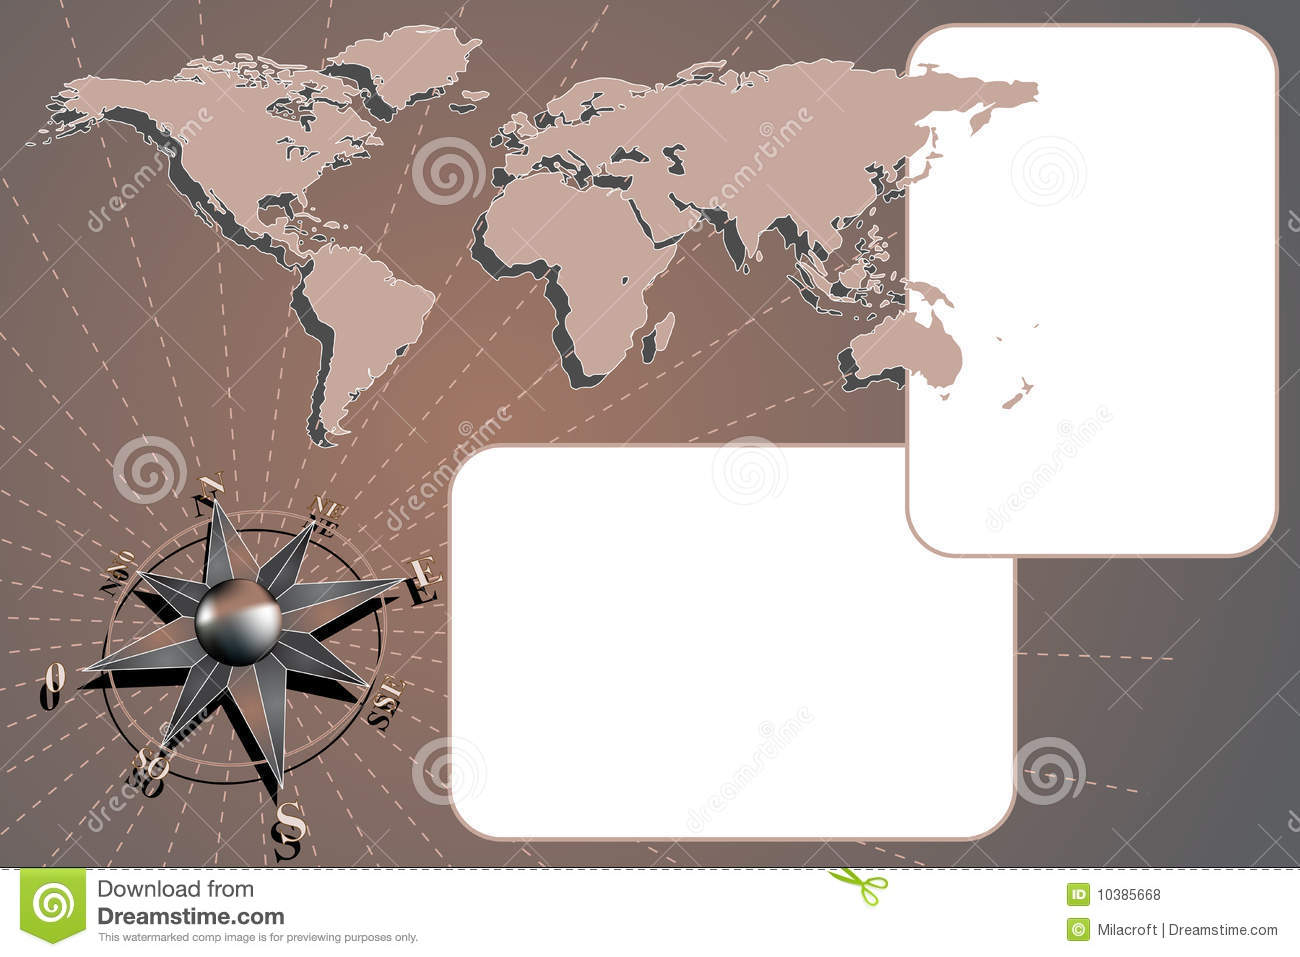 Scrapbook with compass rose and map world stock vector scrapbook with compass rose and map world gumiabroncs Images